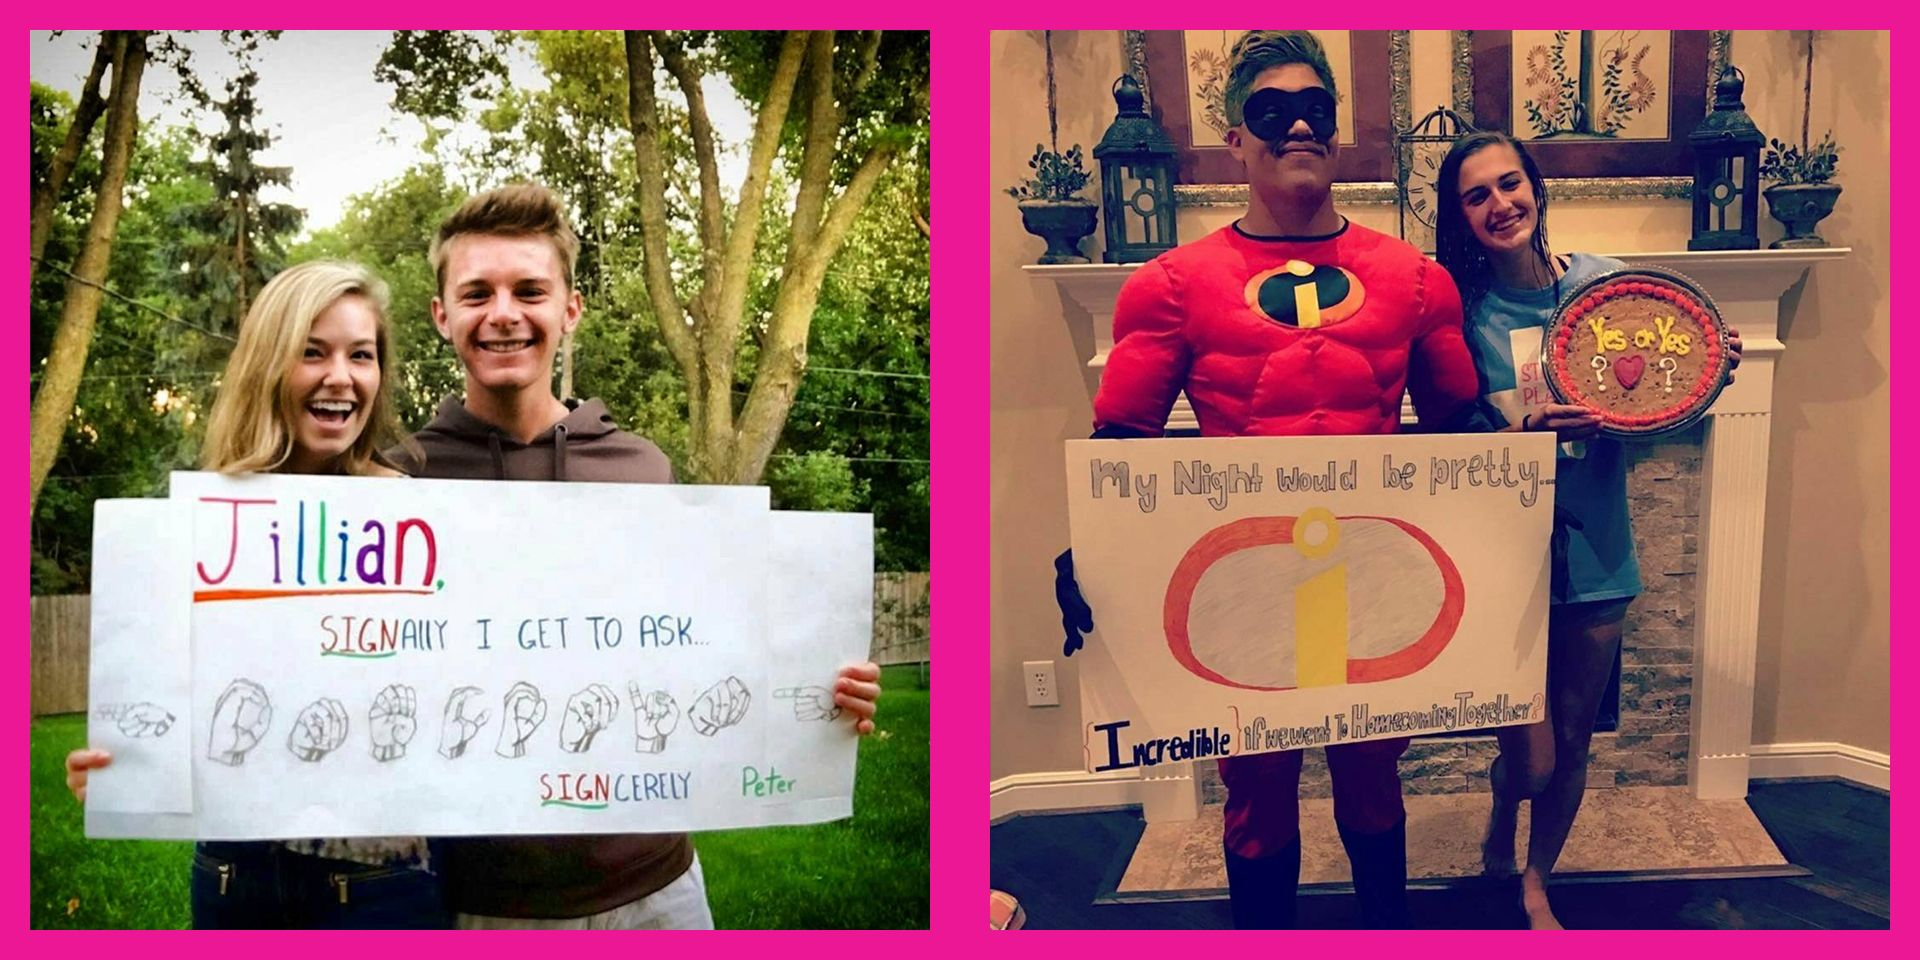 Homecoming Ideas To Ask A Girl